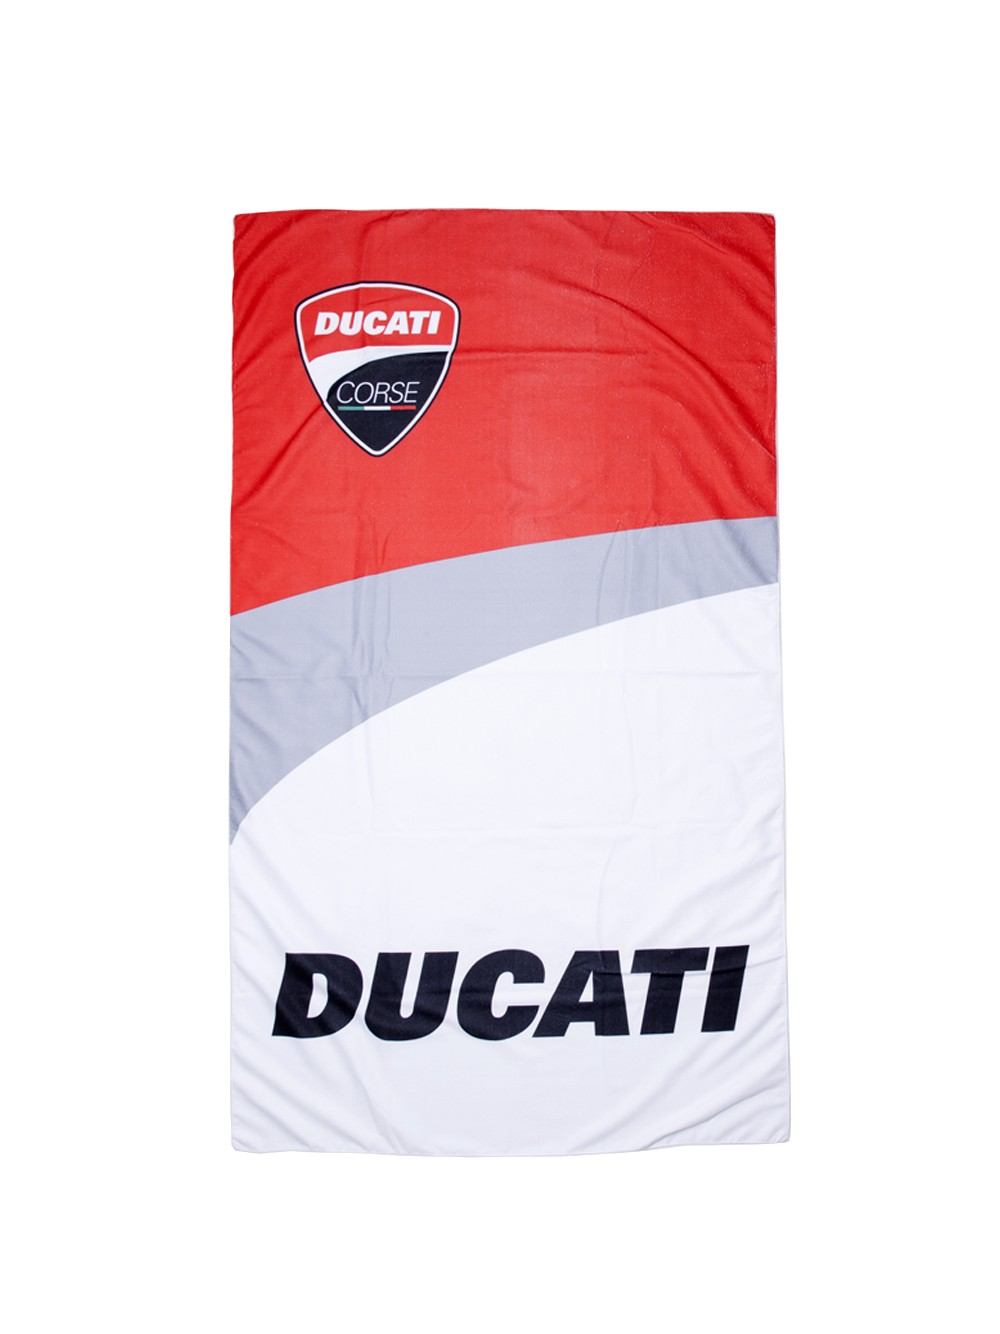 motogp apparel ducati corse ducati corse serviette de plage 1756001mulu. Black Bedroom Furniture Sets. Home Design Ideas